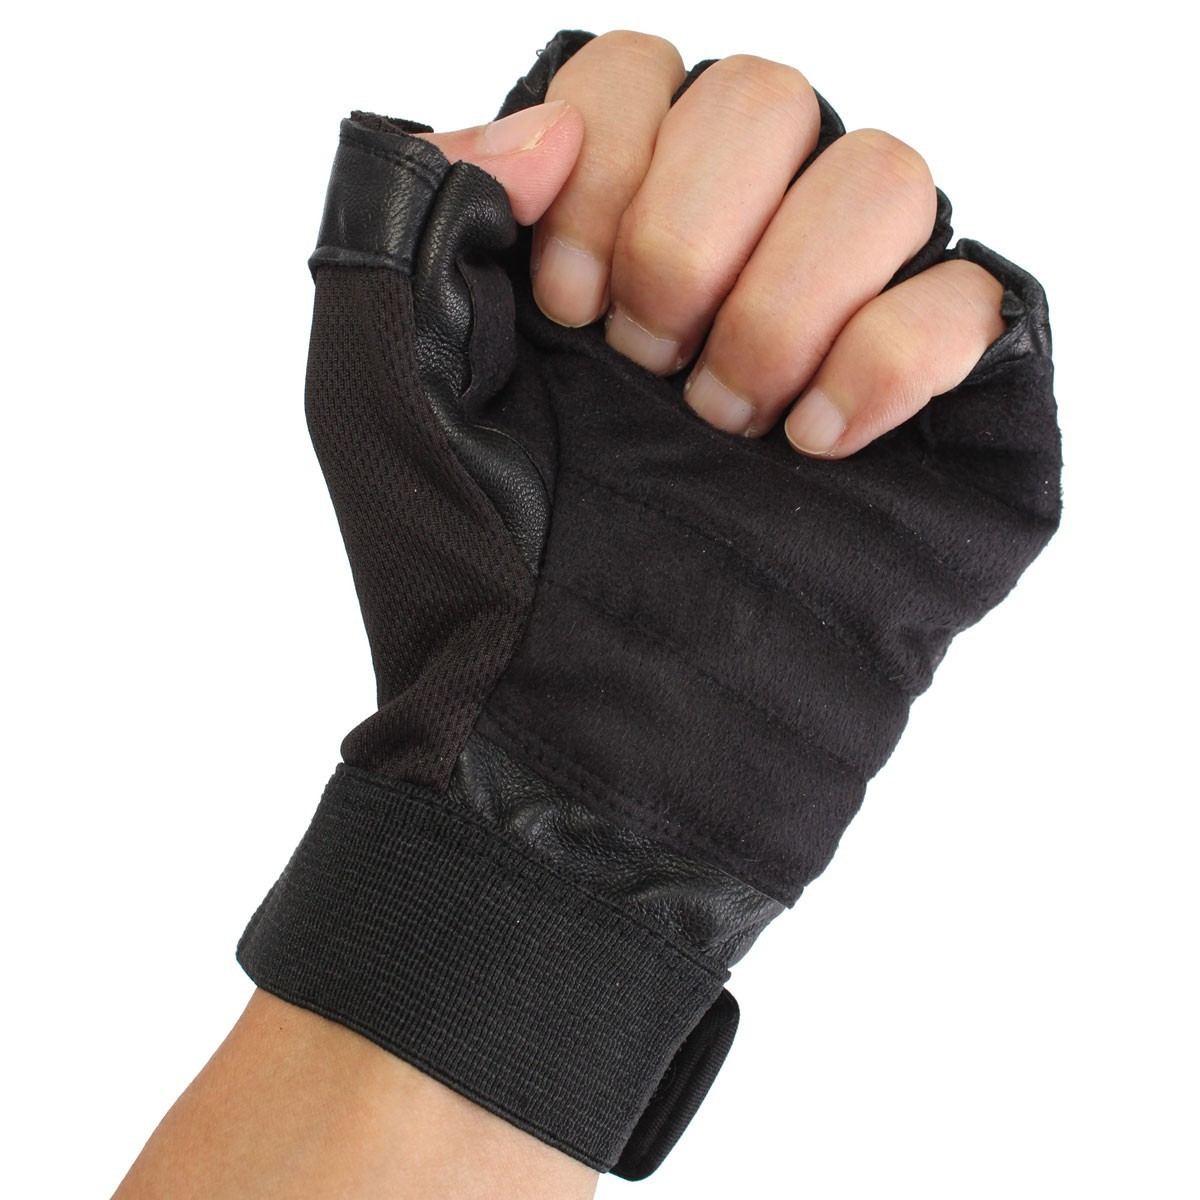 Gym Gloves Weight Lifting Leather Workout Wrist Support: Tactical Men's Leather Weight Lifting Gloves Training Gym